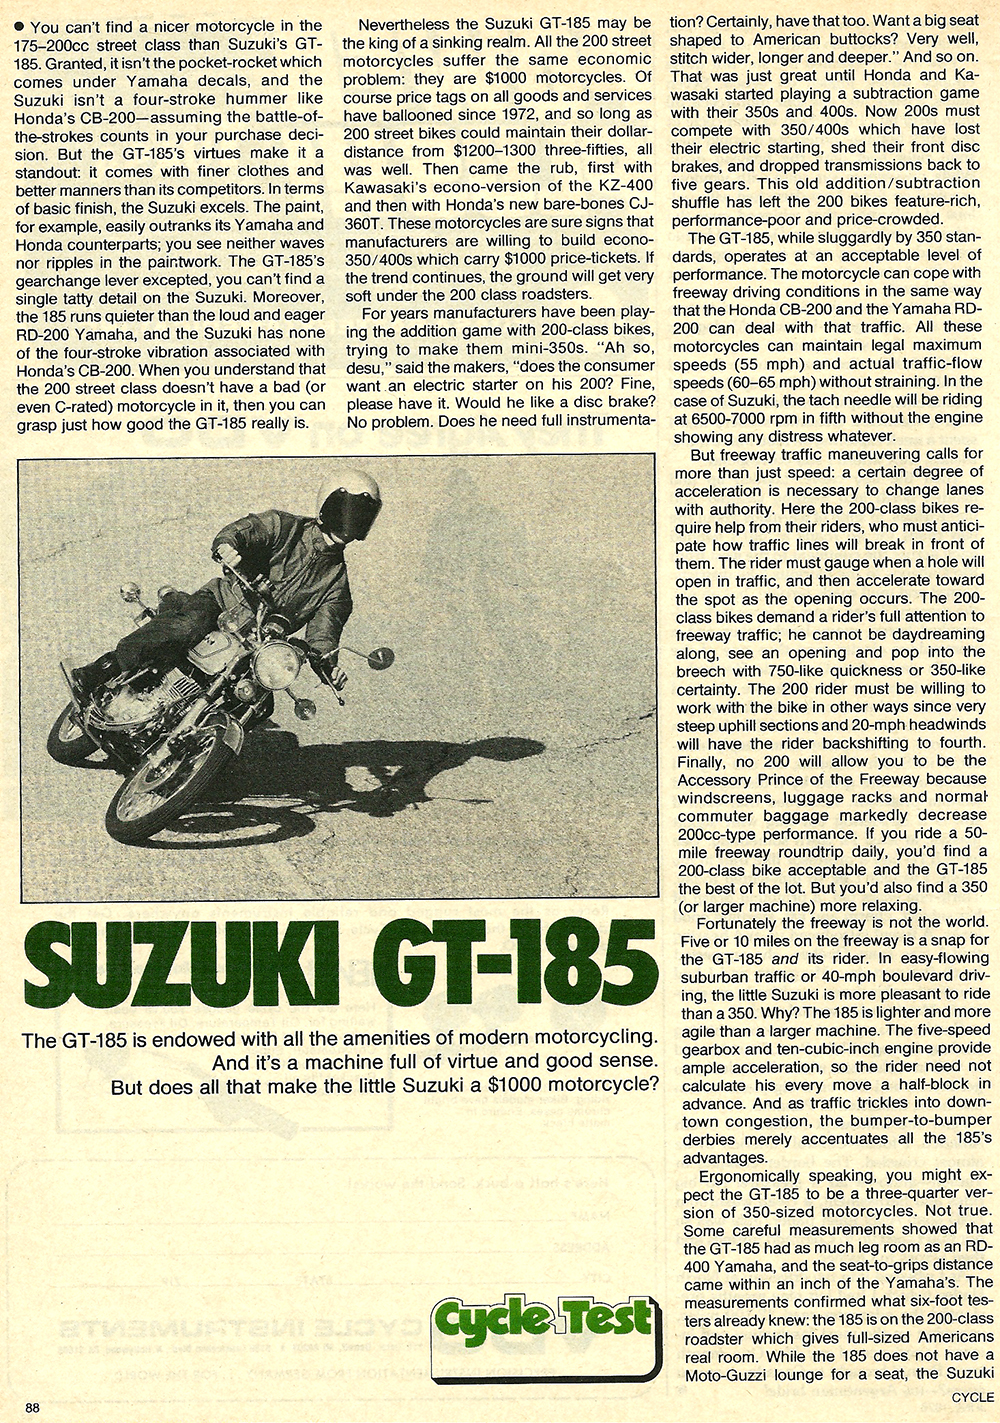 1976 Suzuki GT185 road test 1.jpg